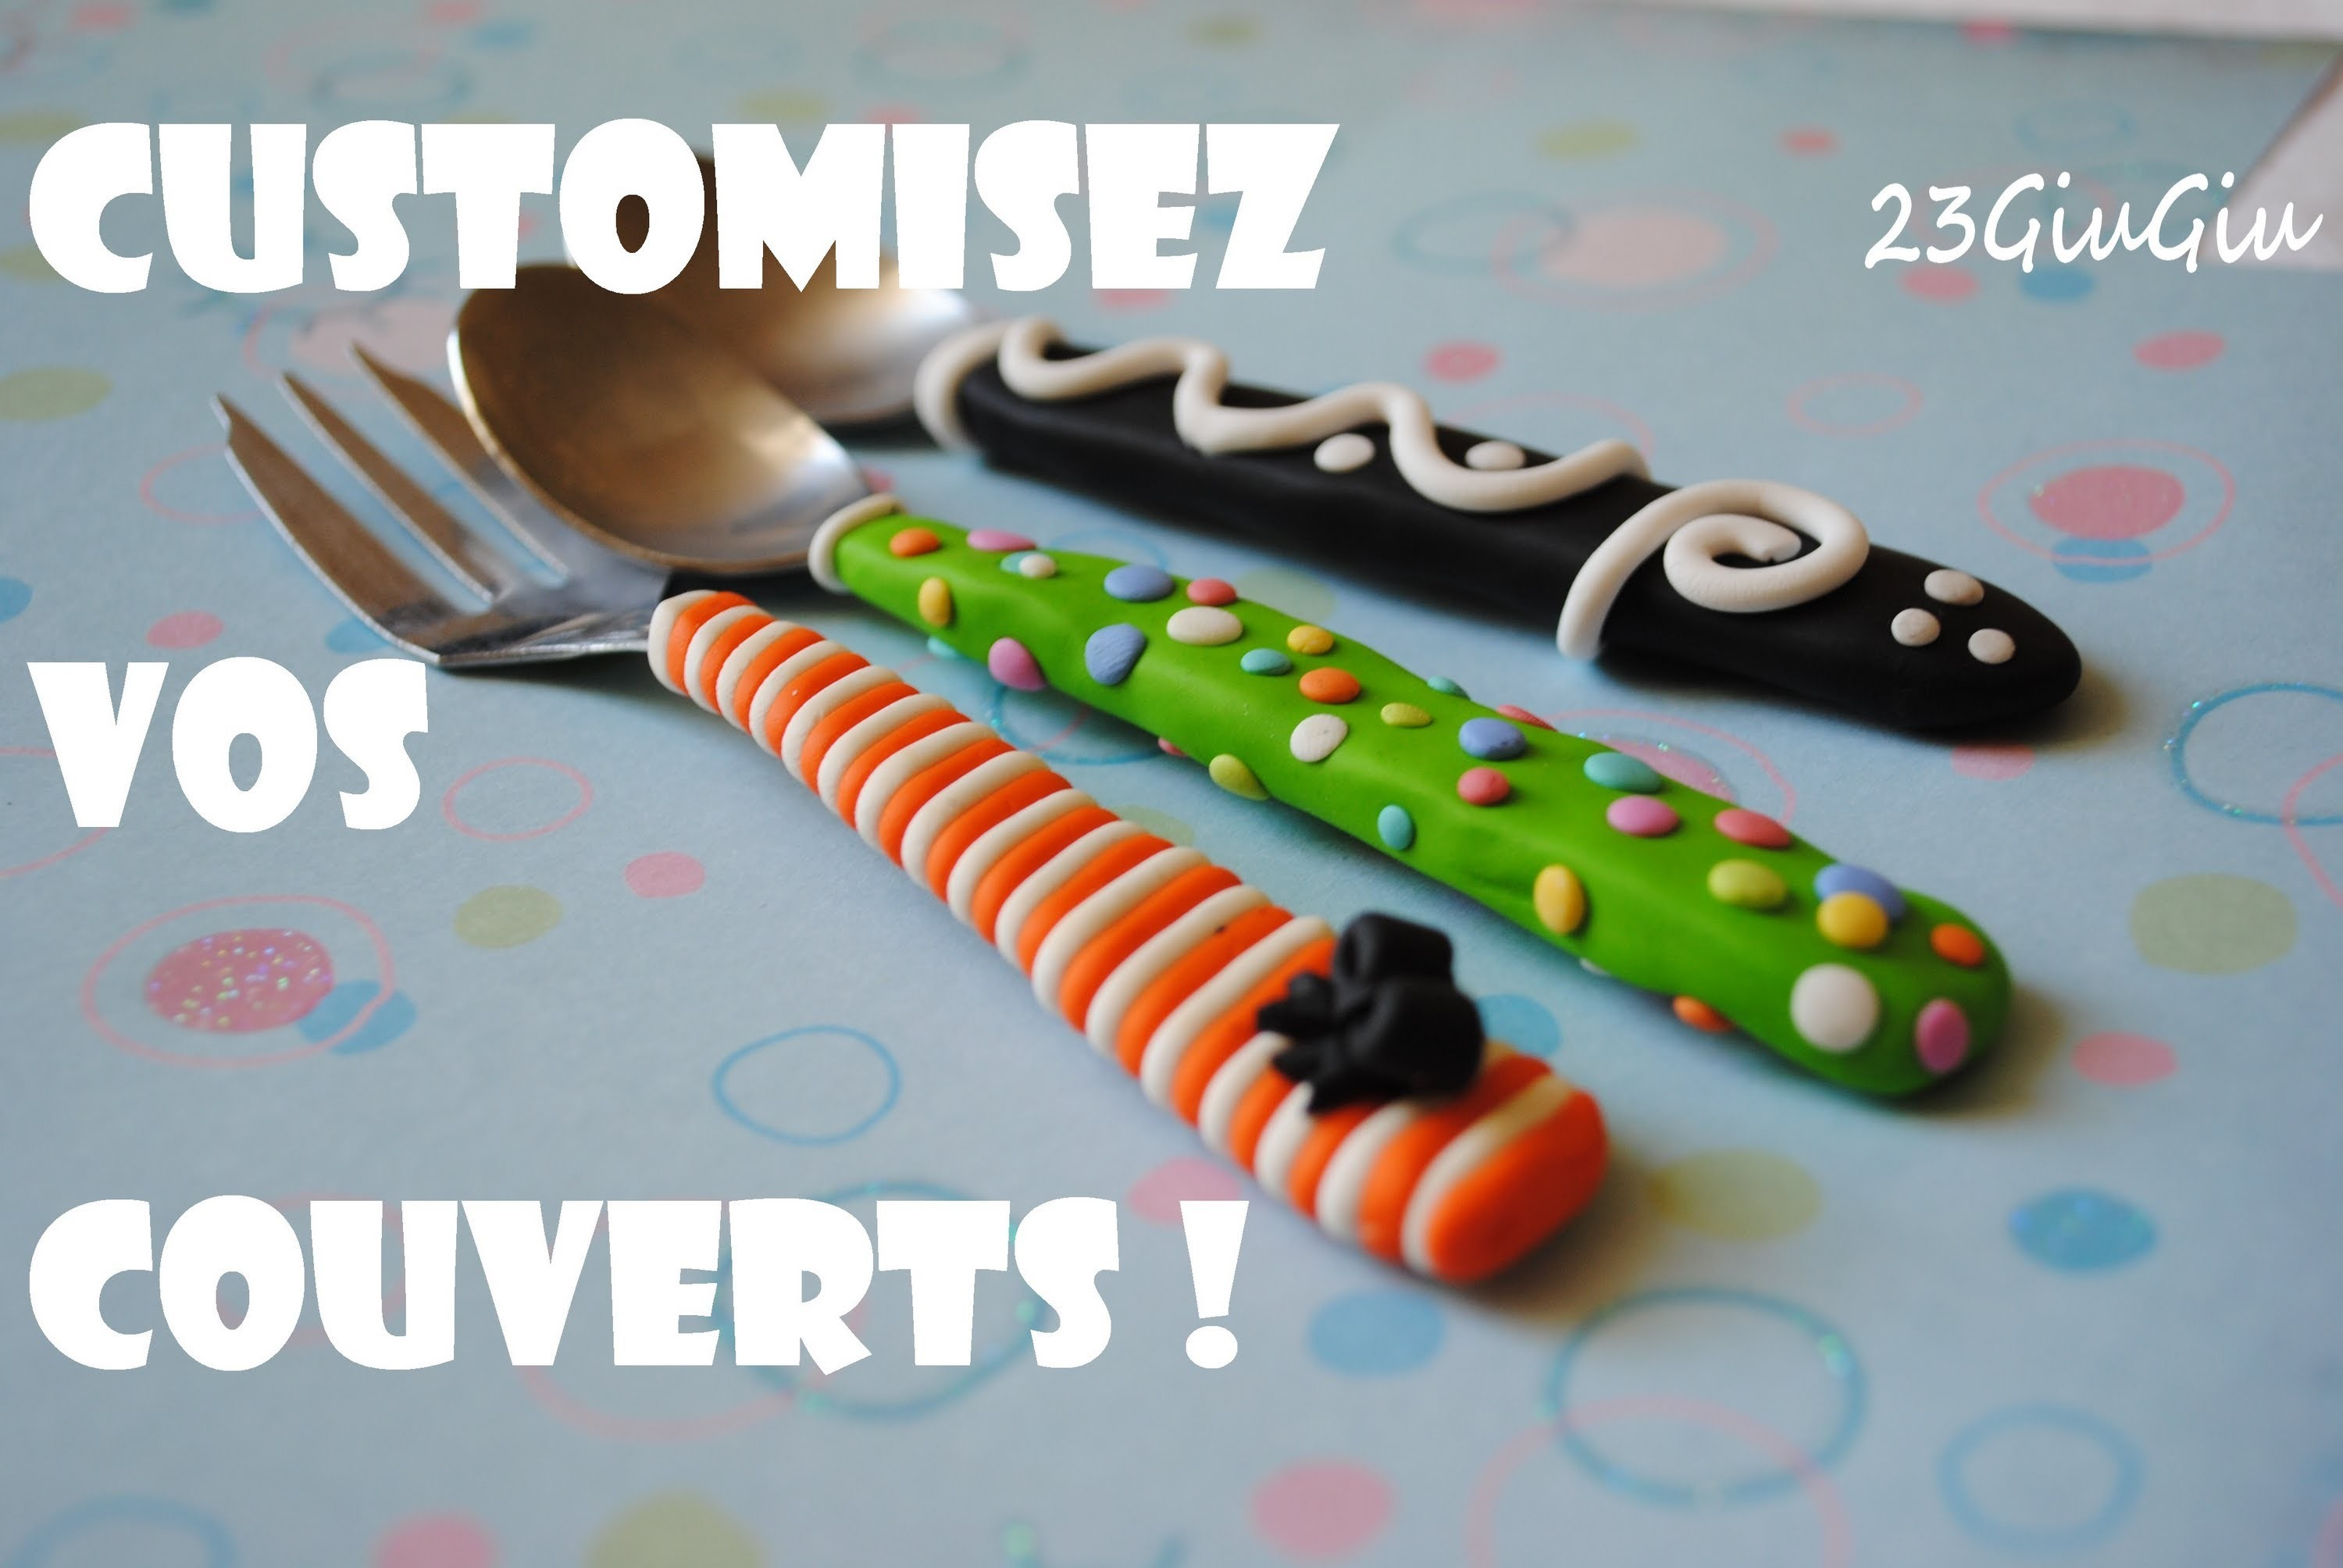 Tuto Fimo: Customisez vos couverts !